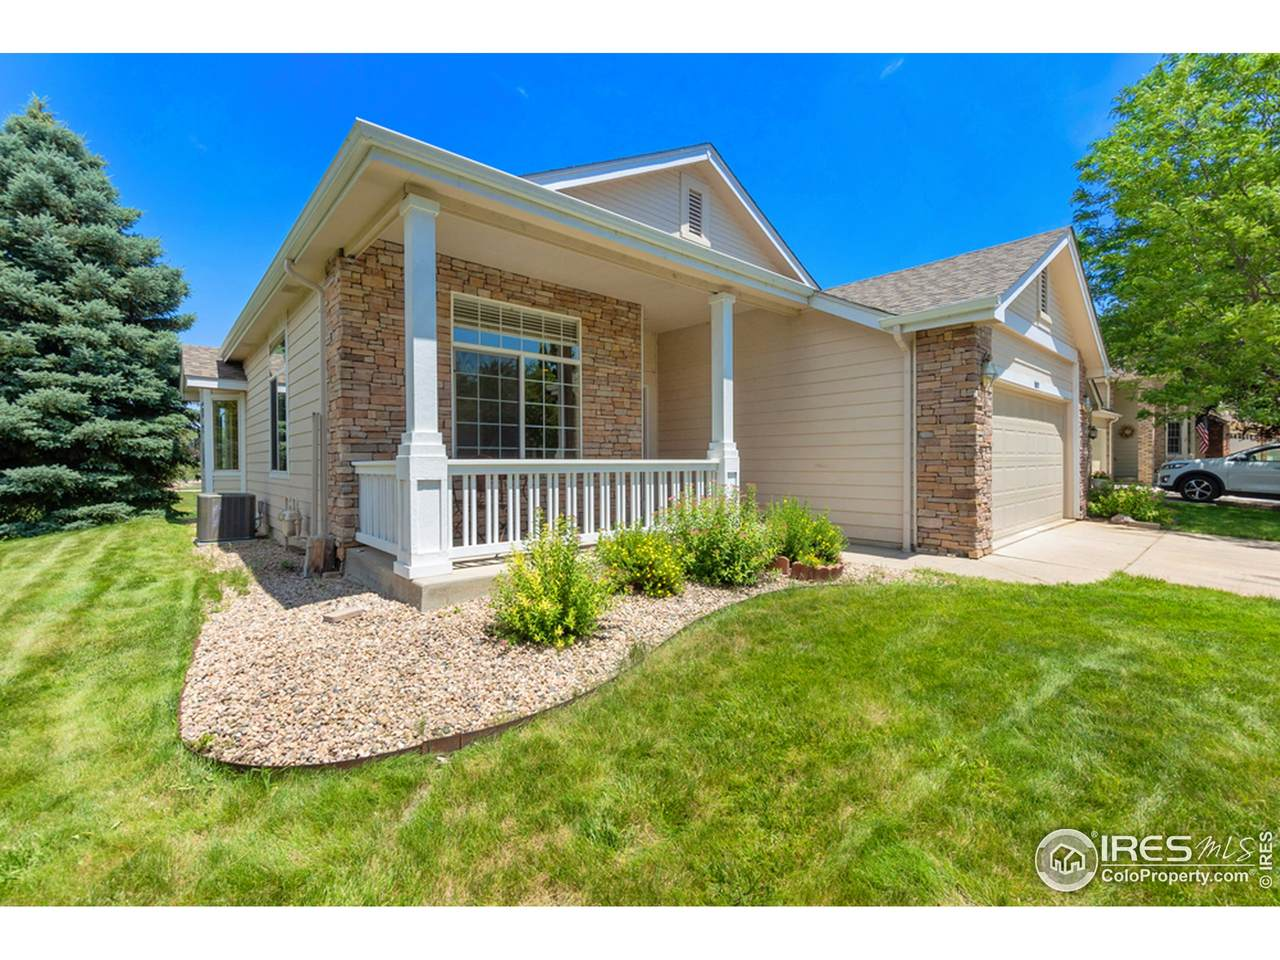 1100 Canvasback Dr - Photo 1